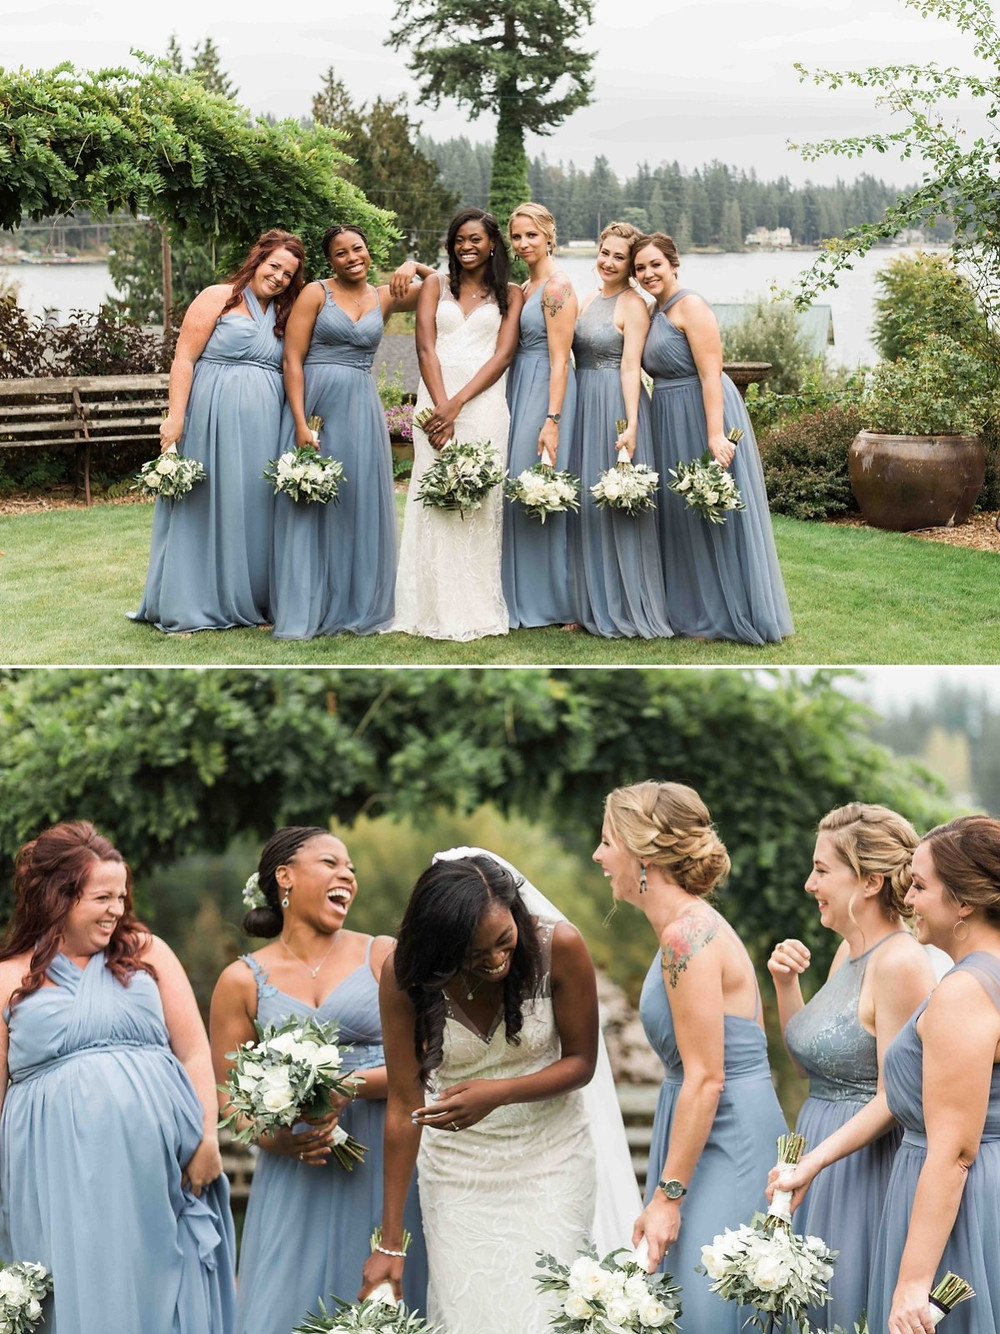 Photos of a bridal party from a wedding at Green Gates at Flowing Lake, a wedding venue in Snohomish near Seattle, WA. | My Snohomish Wedding | Snohomish Wedding Planning